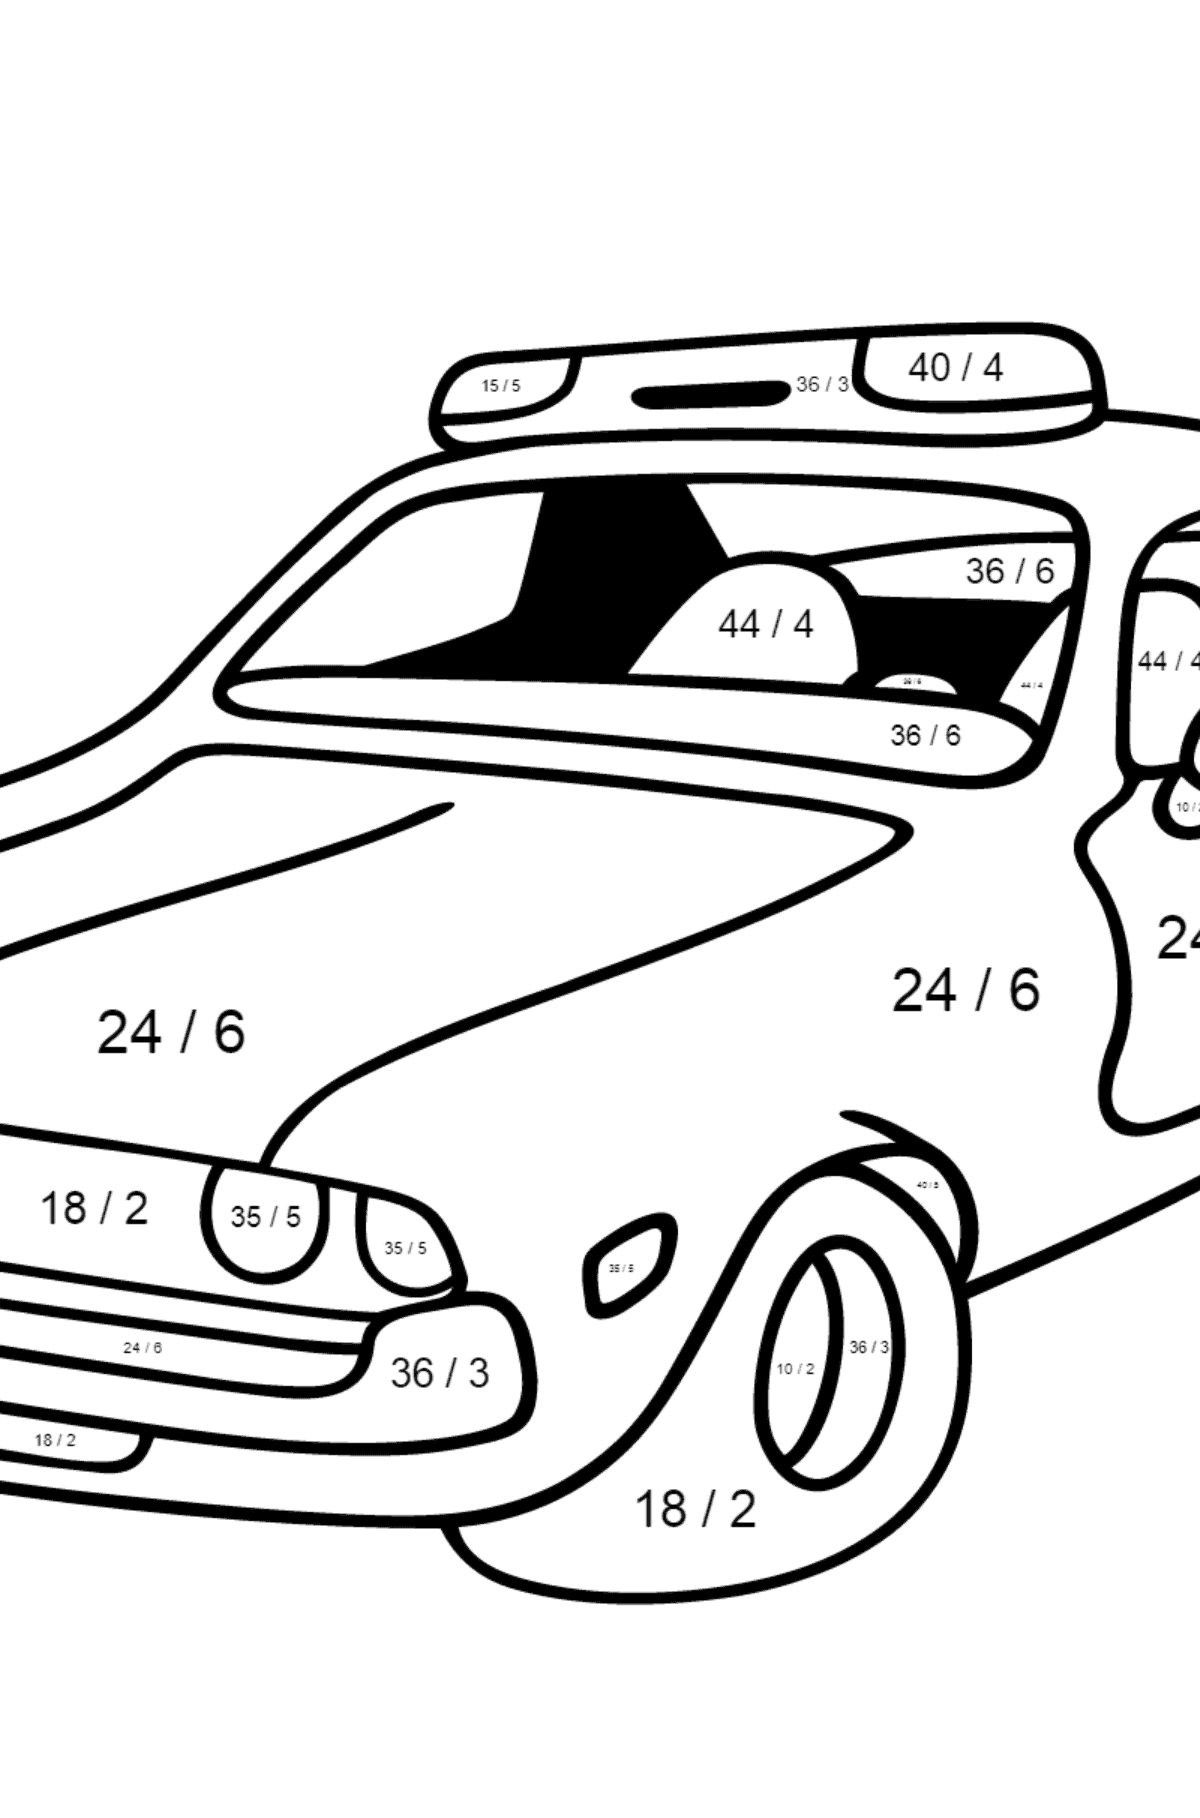 Coloring Page - A Red Police Car for Children  - Color by Number Division